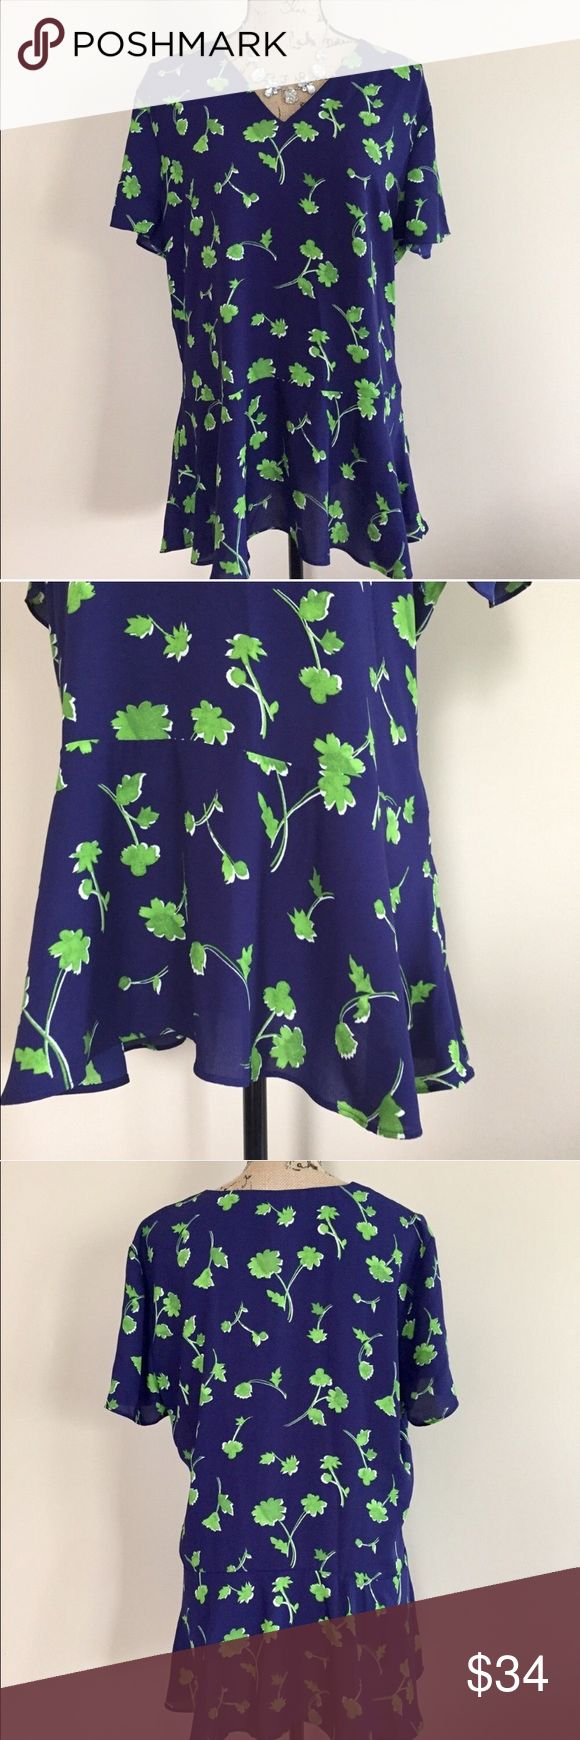 "NWT Banana Republic floral peplum top NWT rich sapphire blue medium weight chiffon top with clover green floral print. Peplum style hem, short sleeves, v neck. Invisible side zip. Size L. 100% polyester. Machine wash. Approx measurements, bust 22"", length 29"".  ⭐️ Banana Republic Tops Blouses"